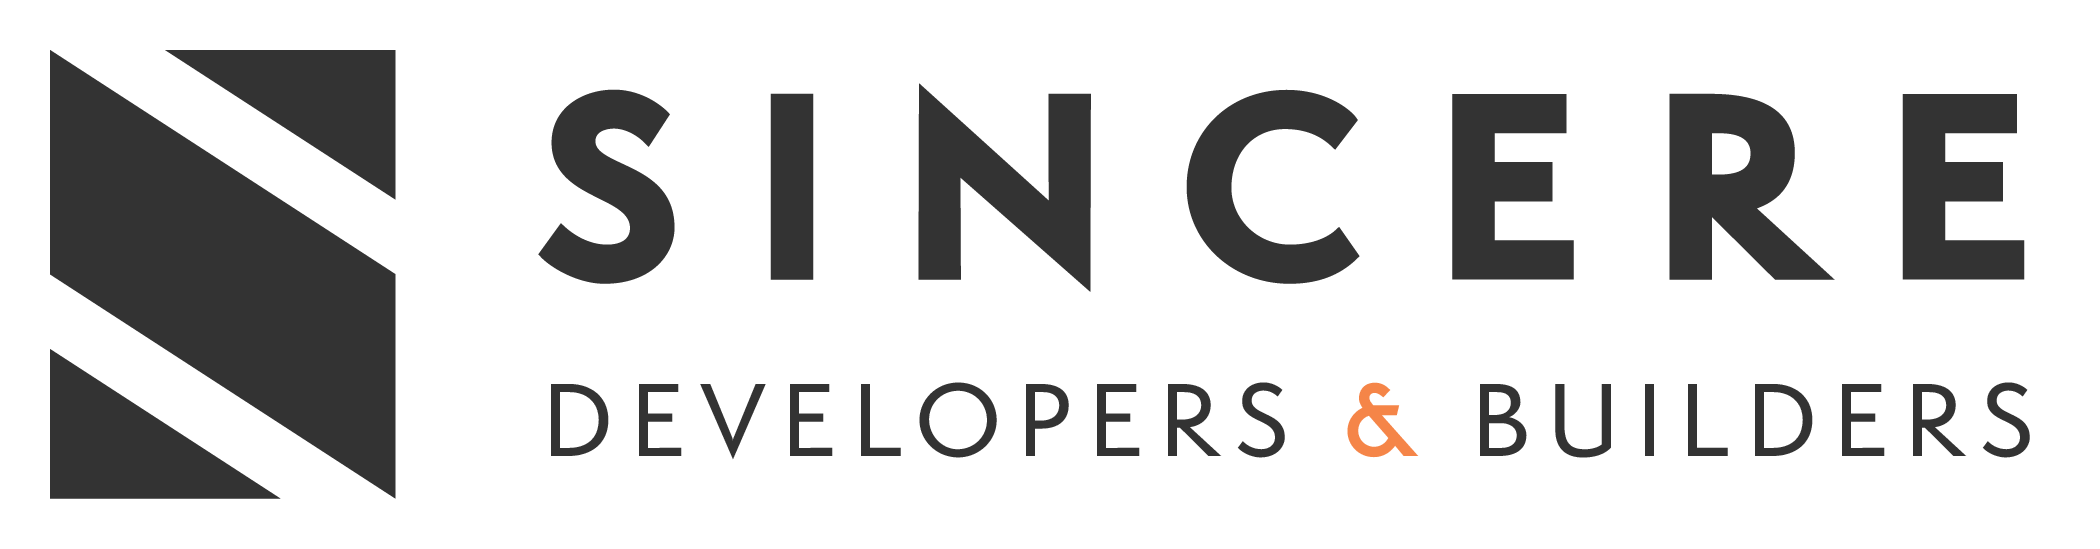 Sincere Builders and Developers